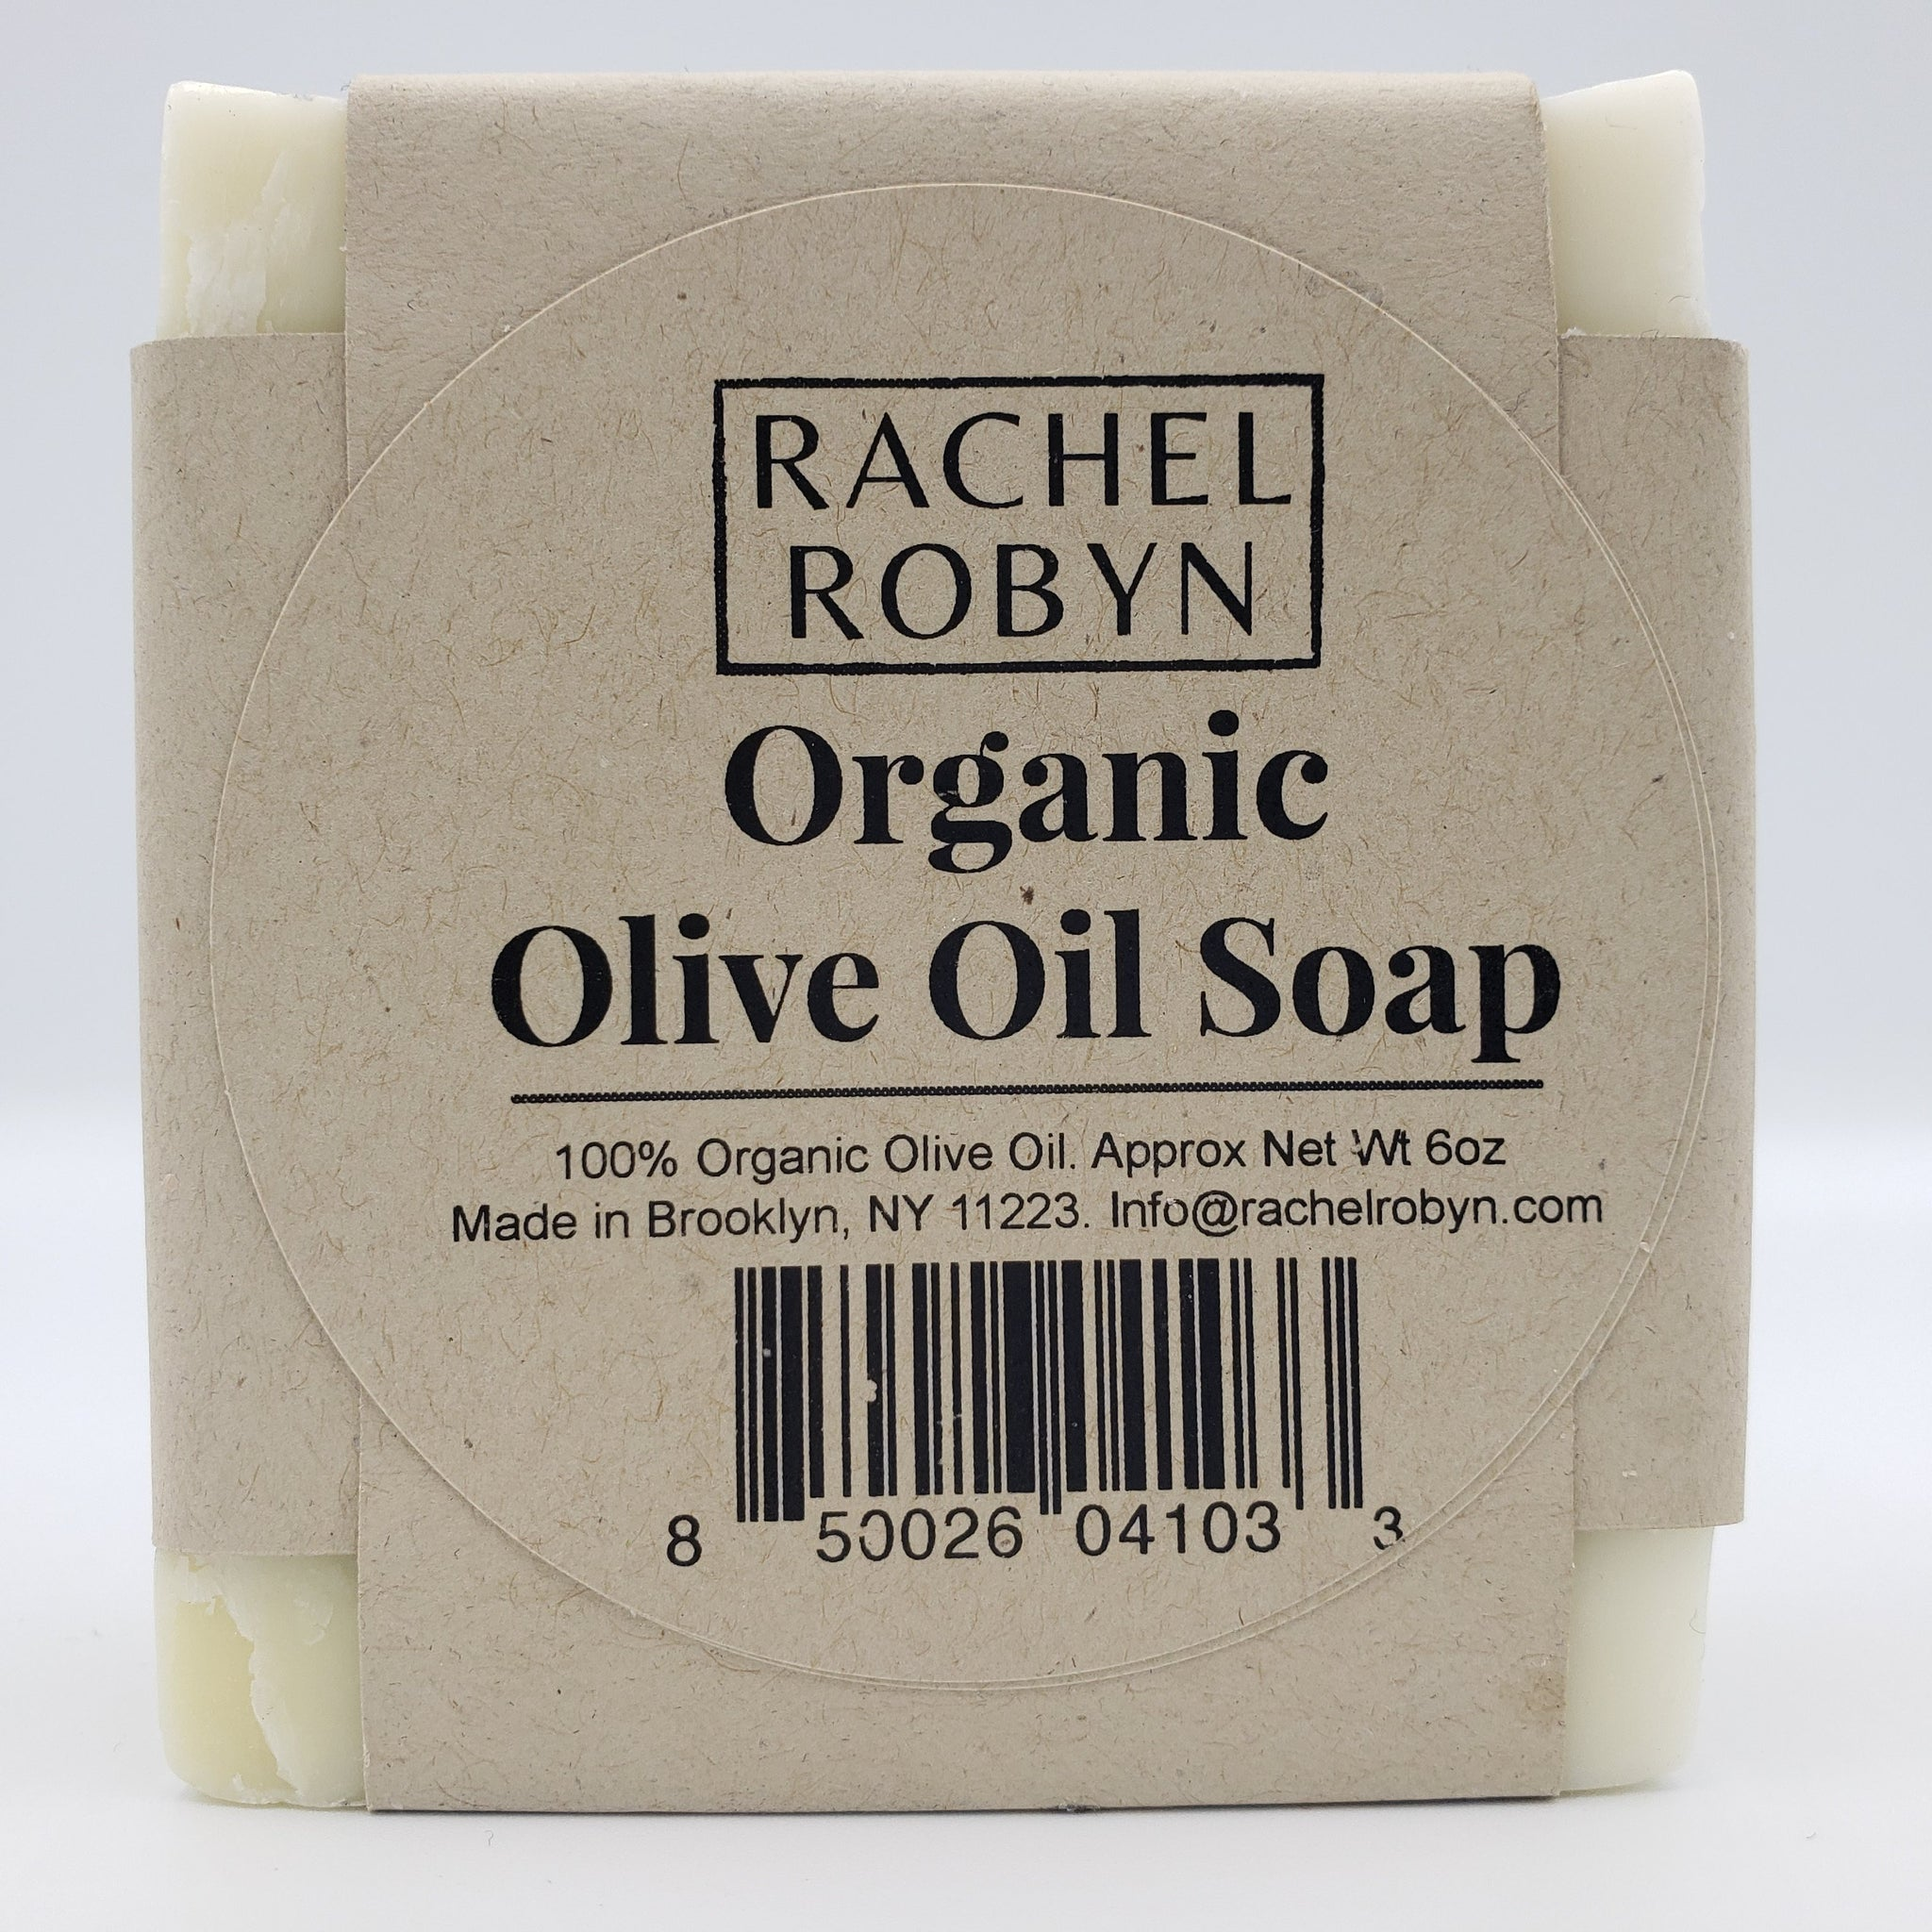 Organic Olive Oil Soap